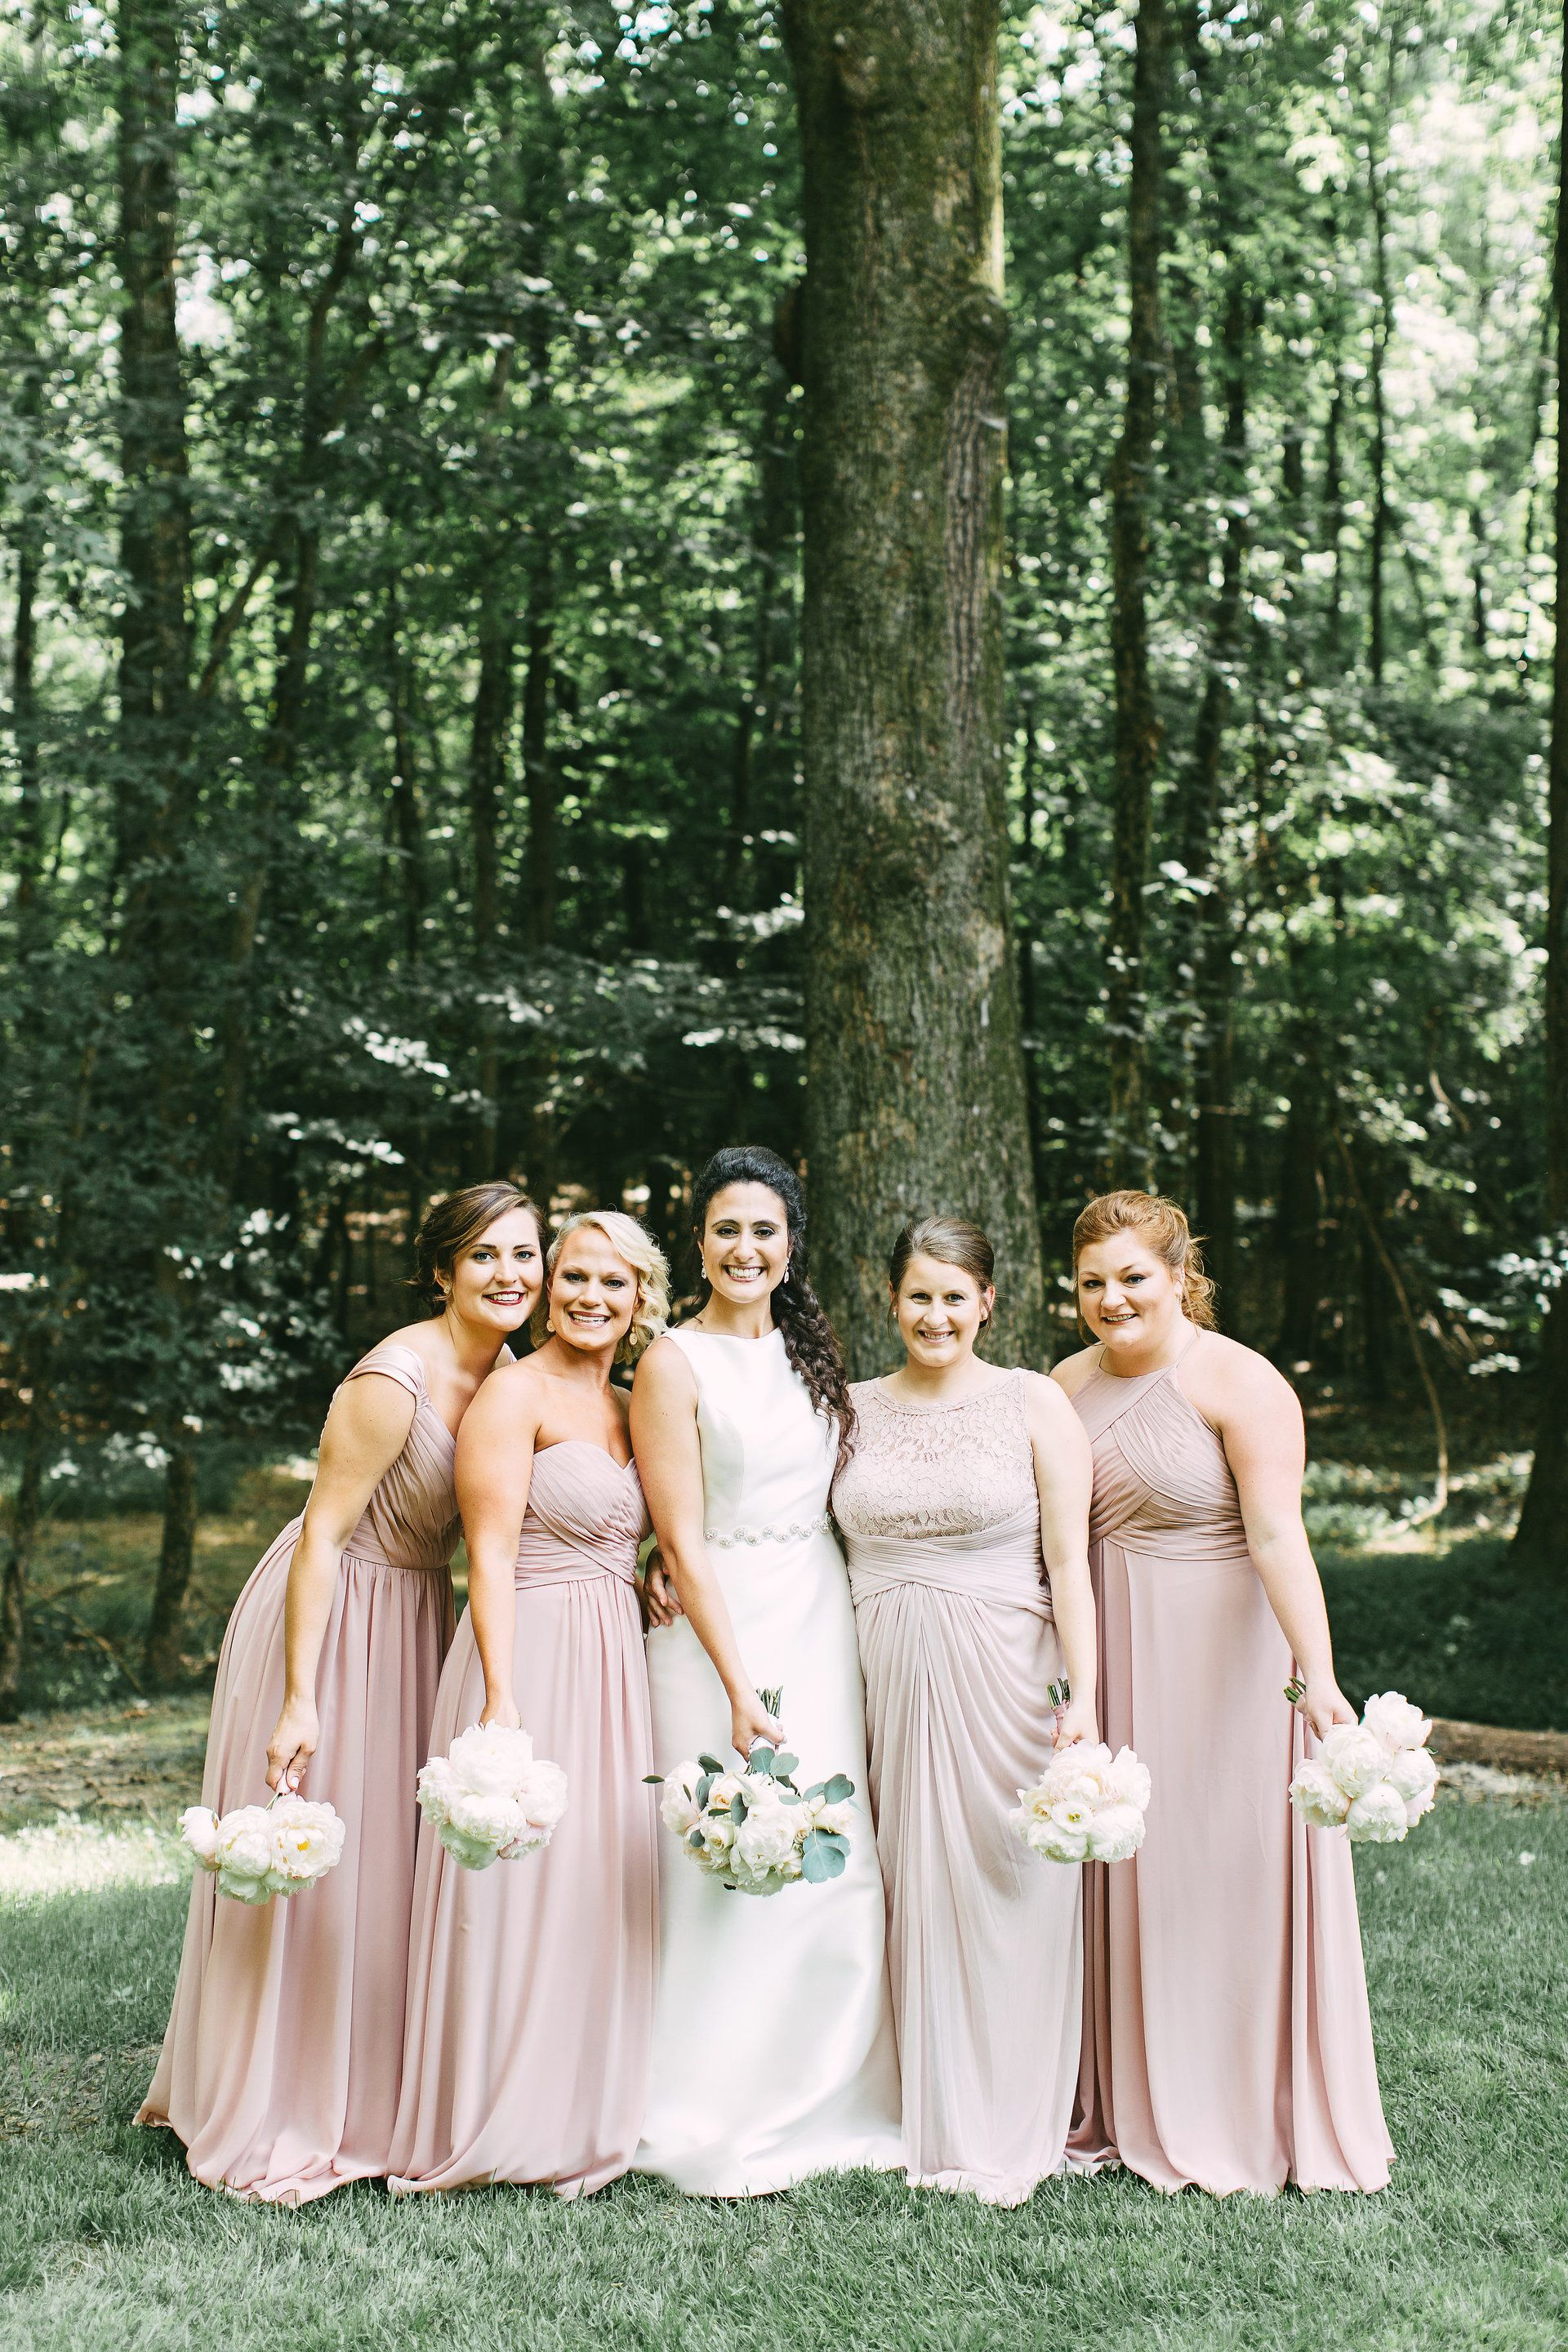 Natural outdoor nuptials in tennessee memphis tn blush blush colored bridesmaid dresses cream wedding bouquets romantic bridal party kelly ginn ombrellifo Images